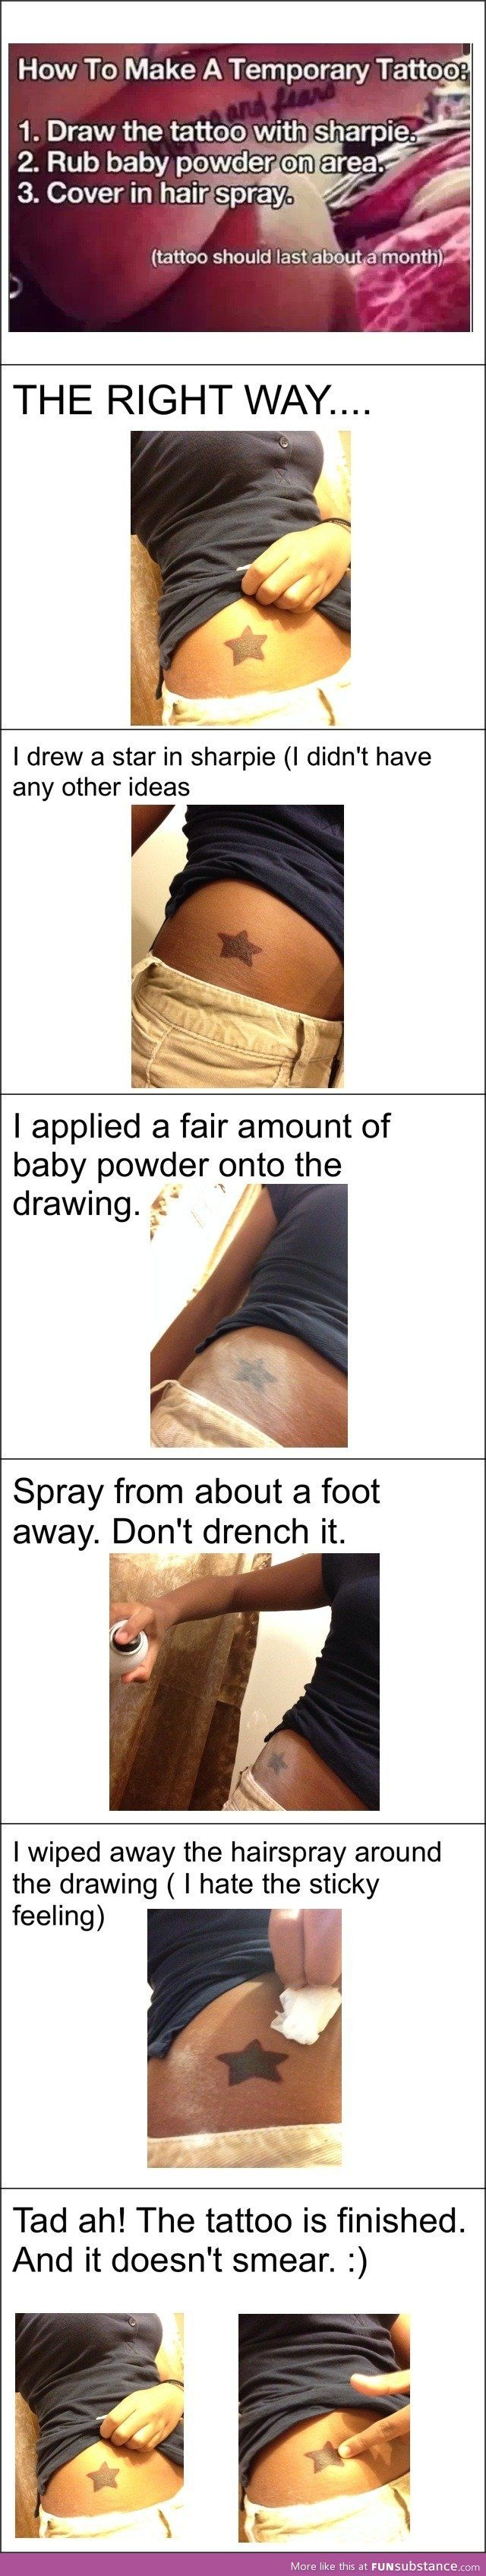 Temporary Tattoo Diy Sharpie: Make A Sharpie Tattoo That Lasts A Month